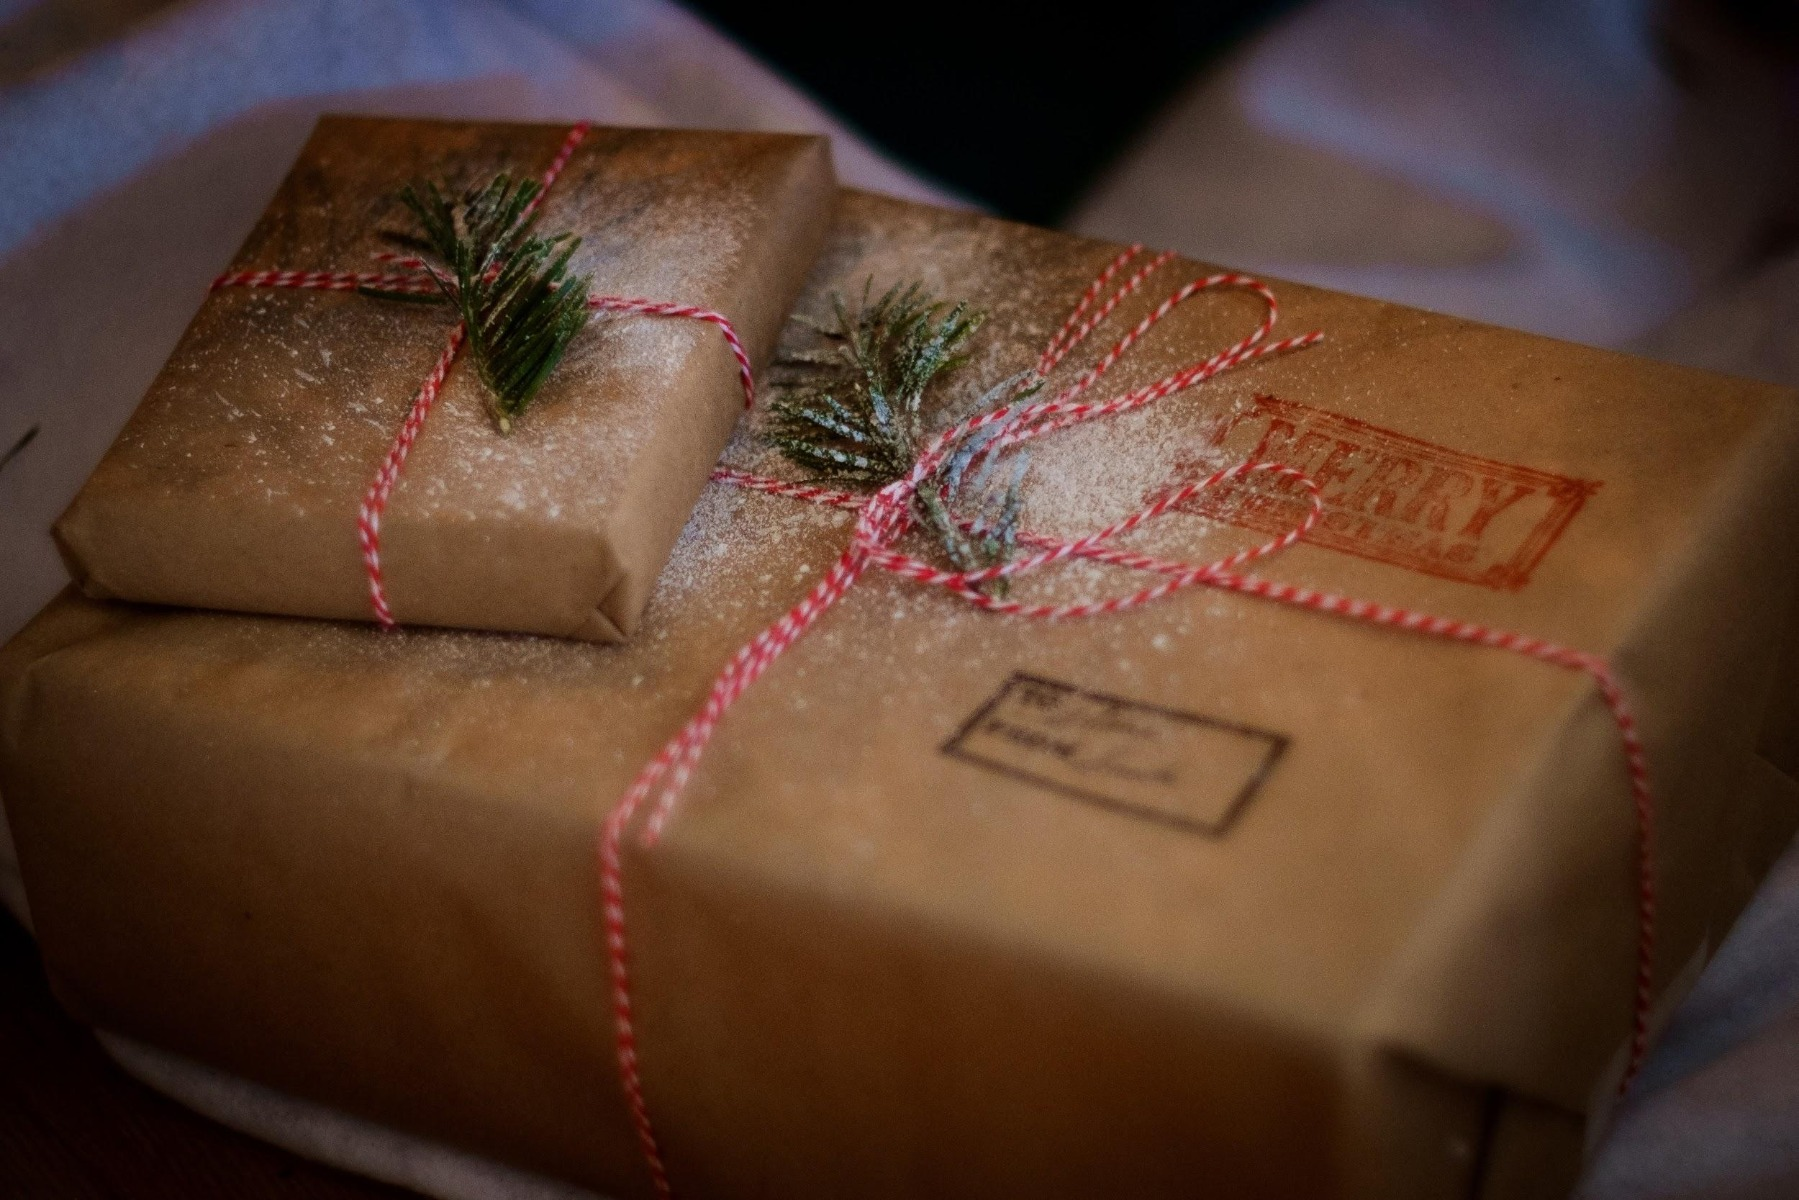 Two paper-wrapped Christmas packages